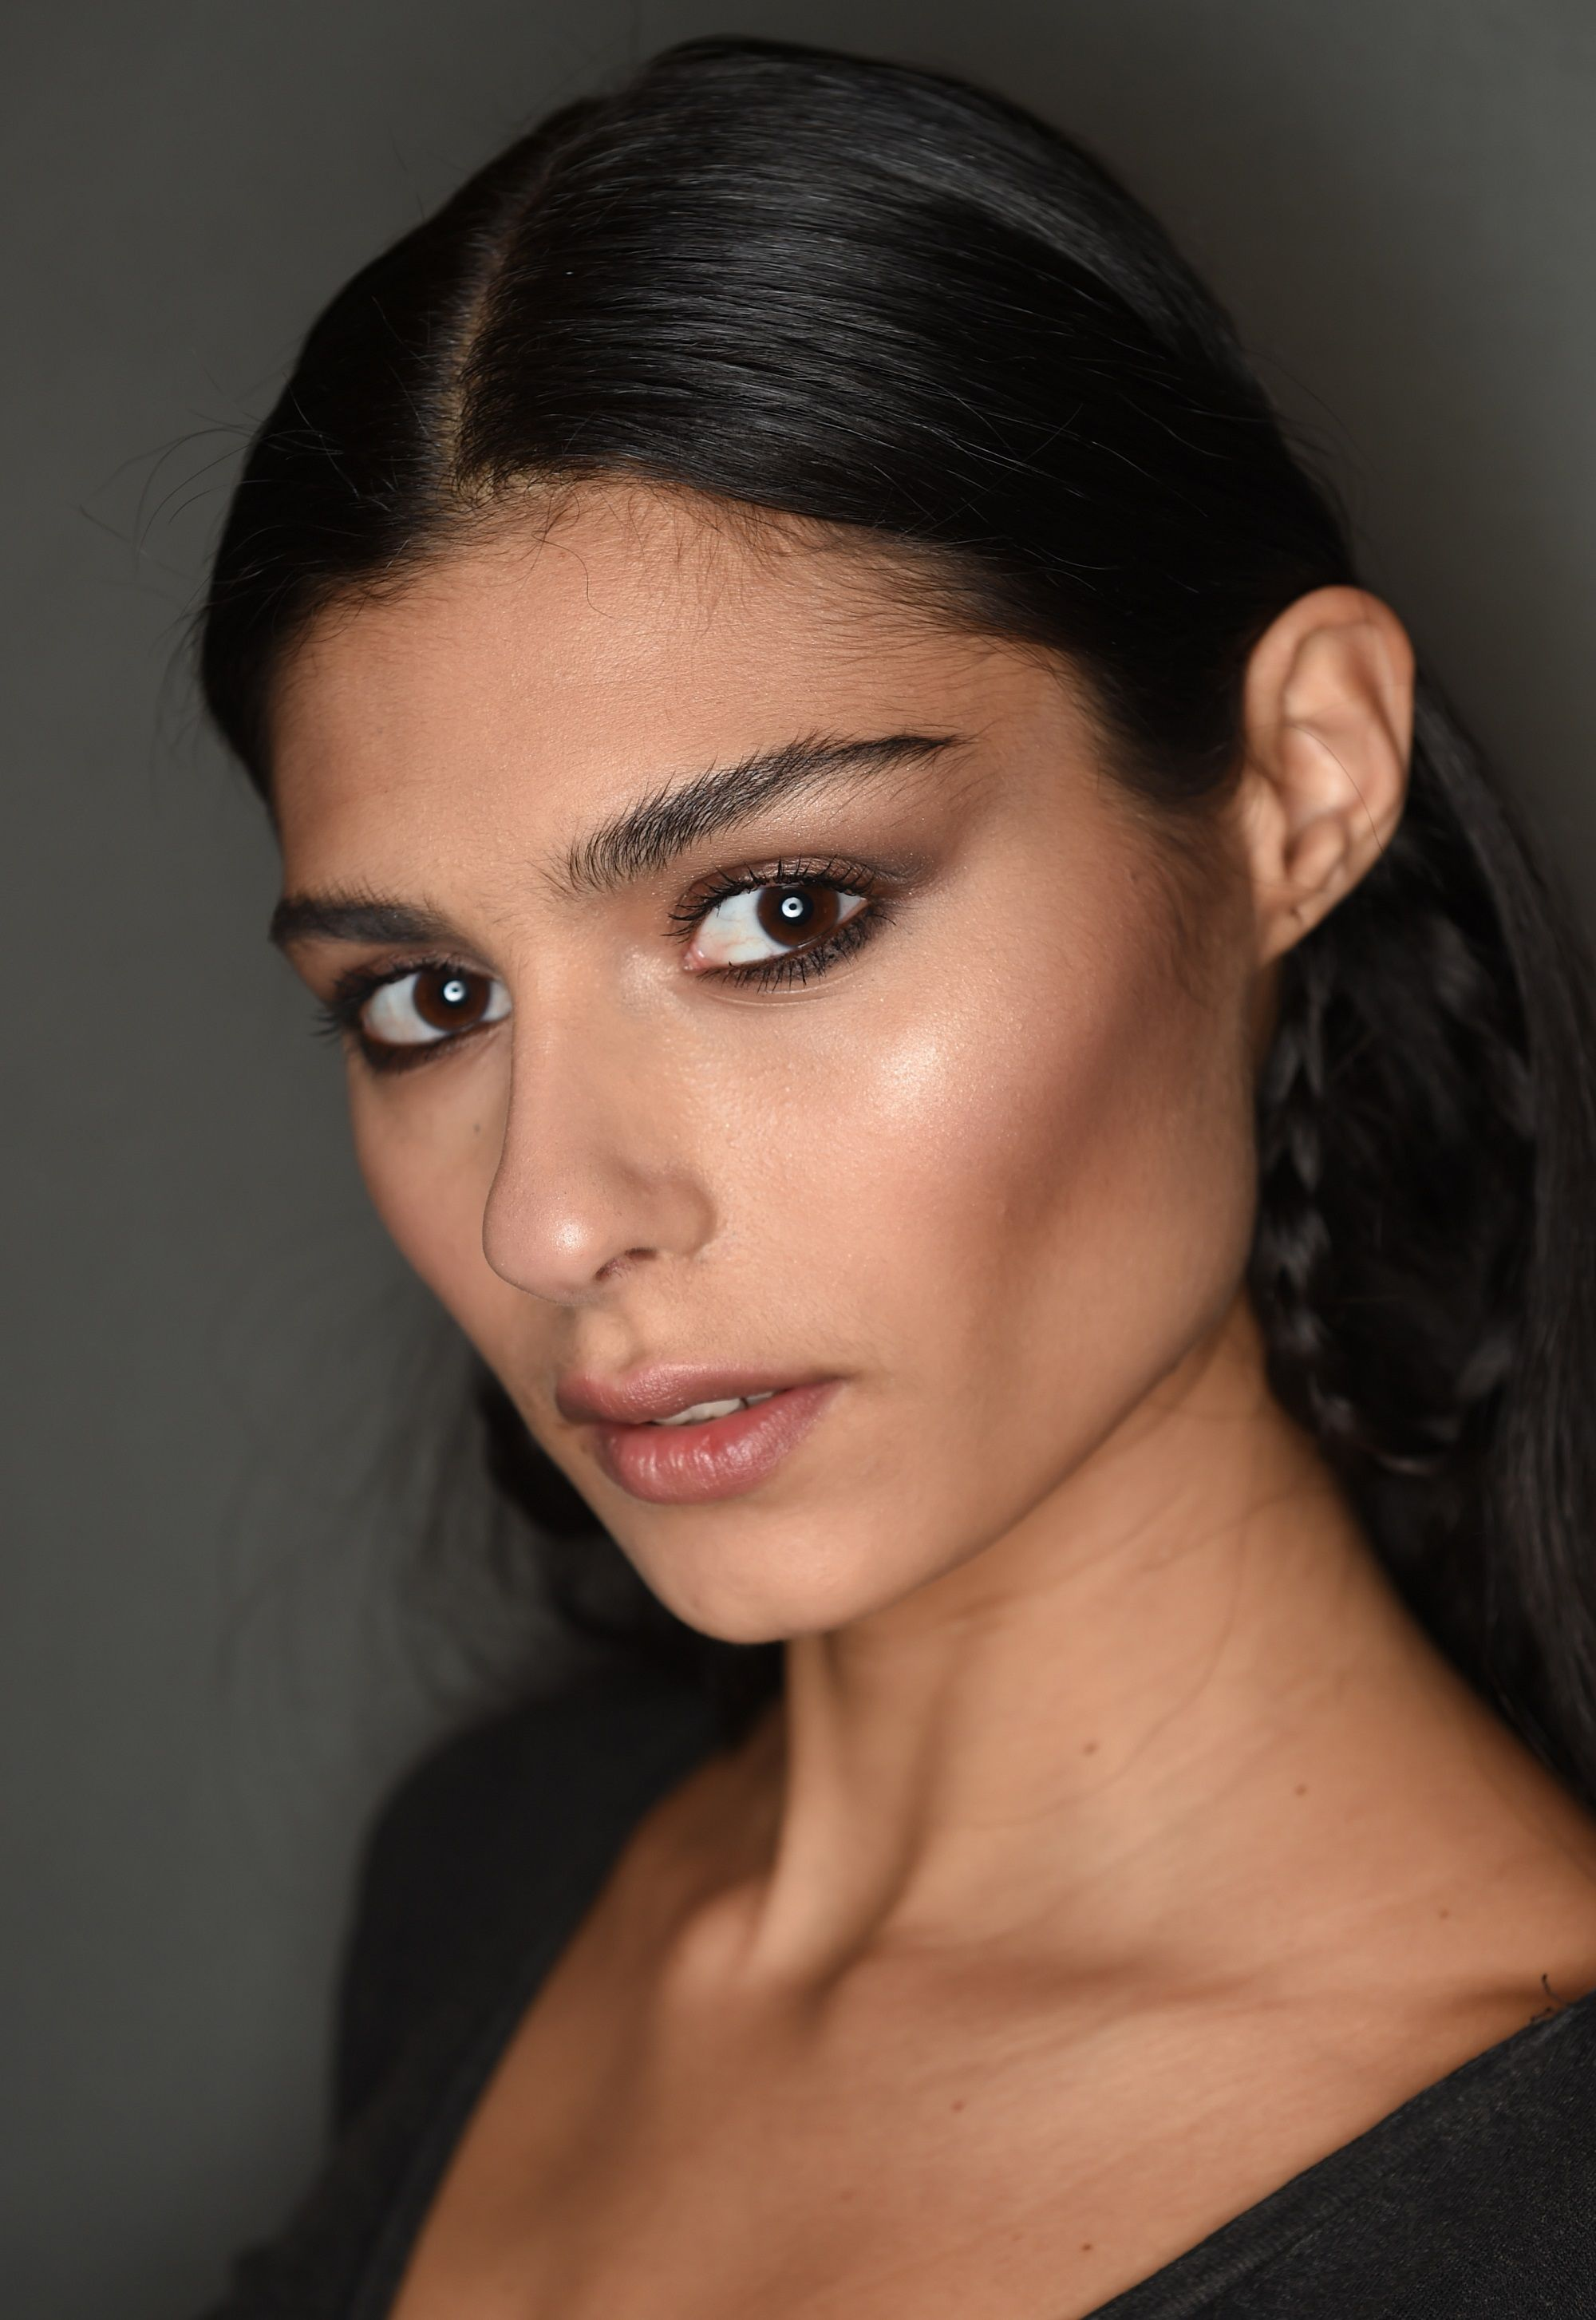 12 Of The Best Blushers For Olive Skin Tones